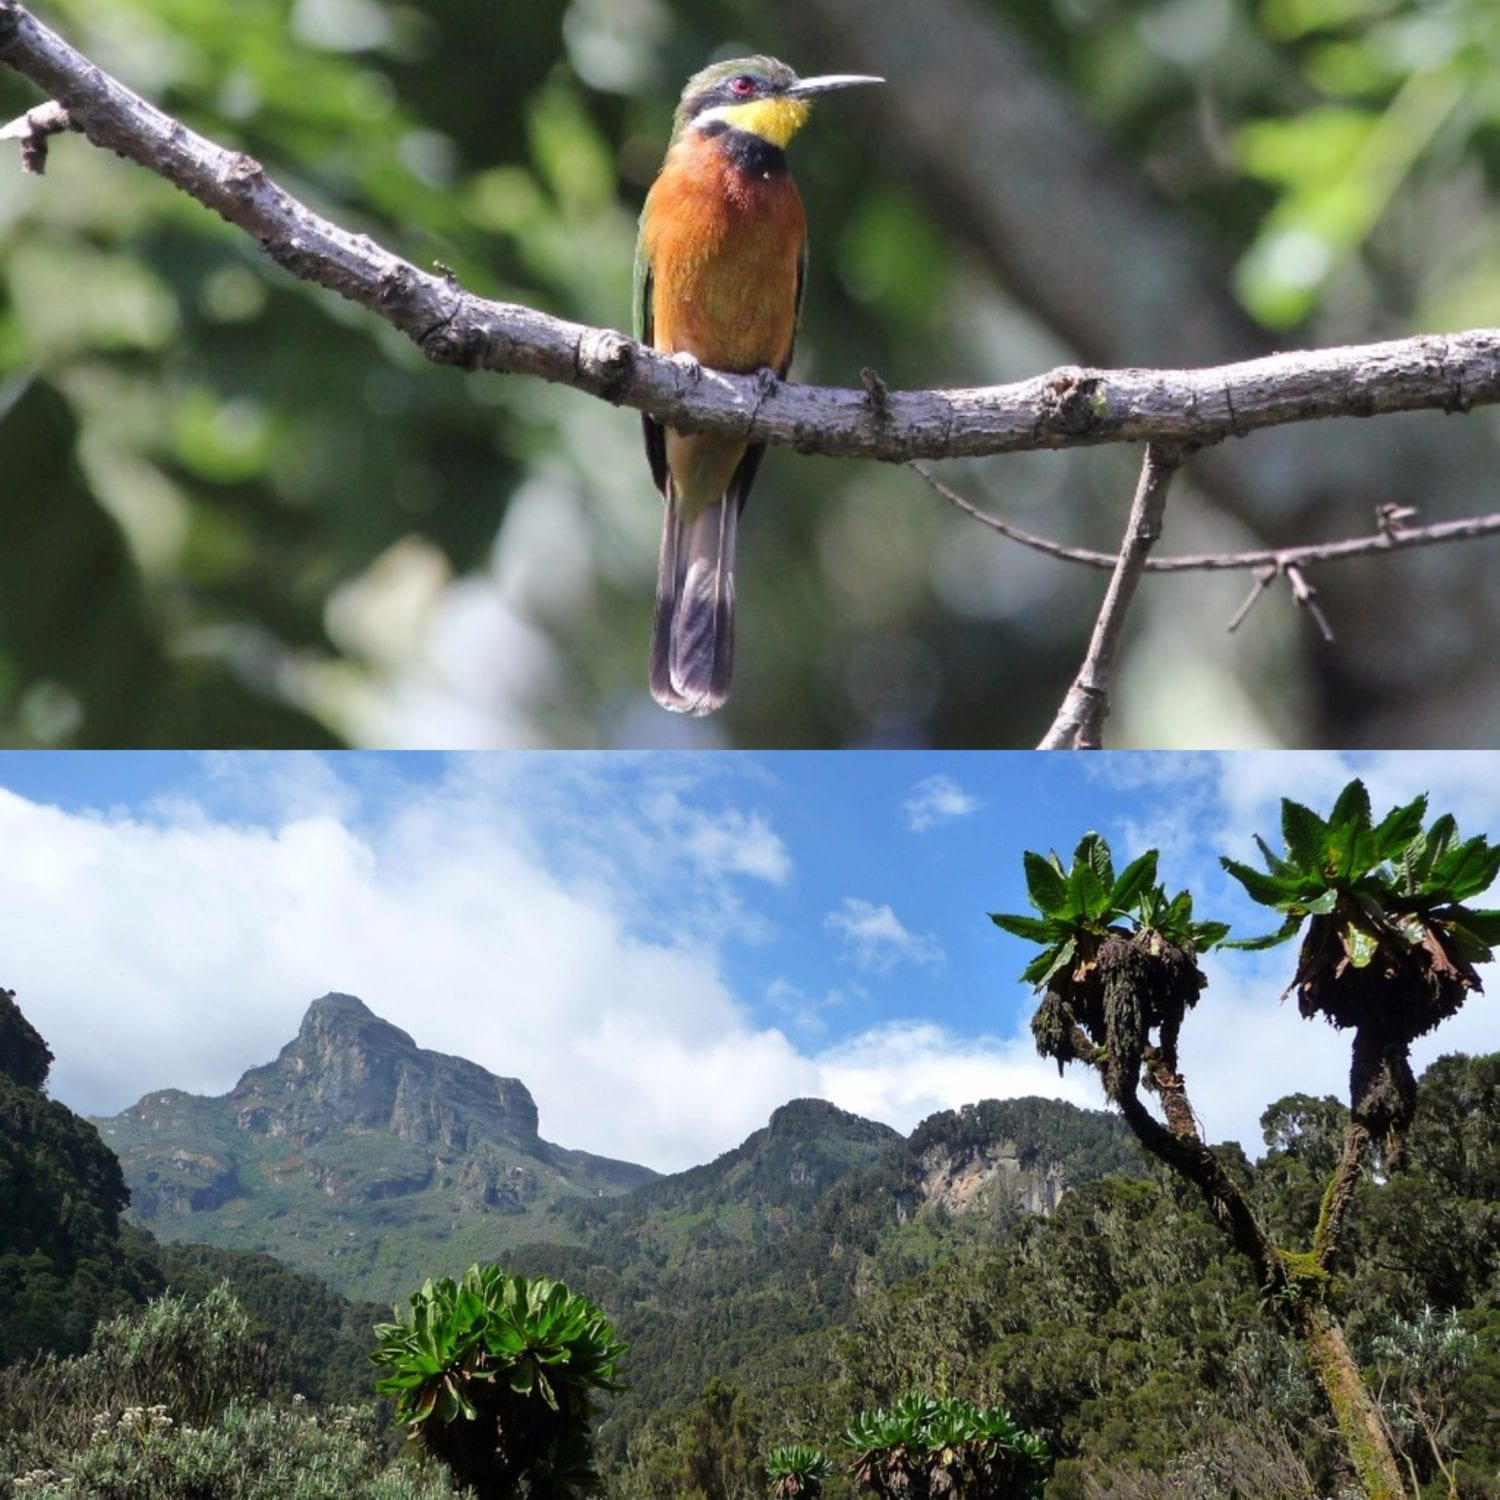 Join us at Rwenzori National Park on our Uganda Birding Tours